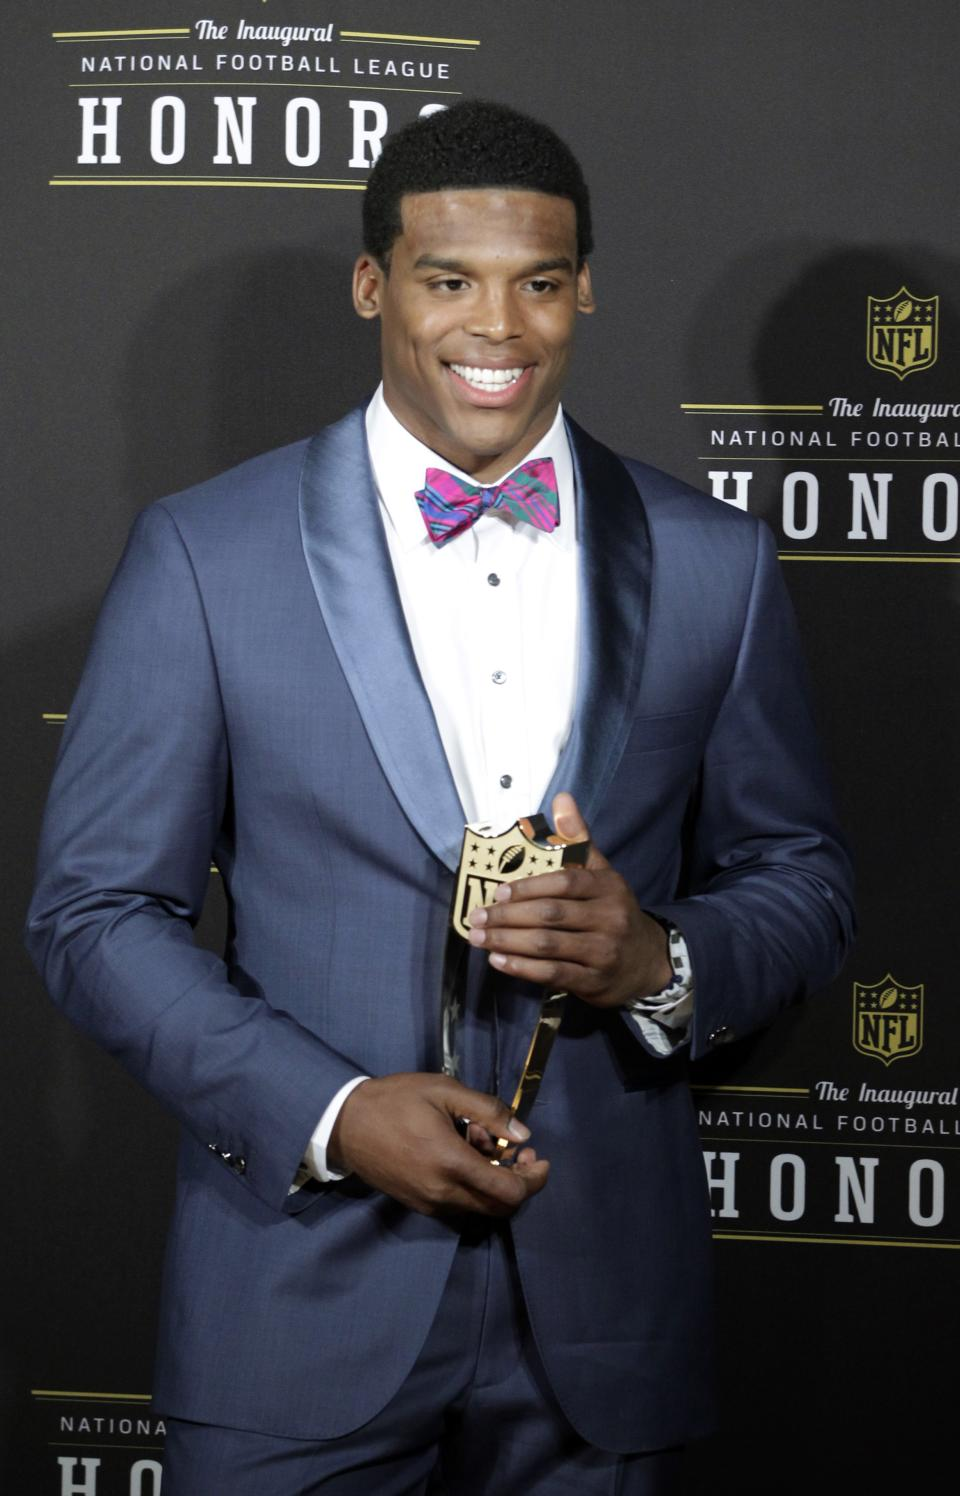 Carolina Panthers' Cam Newton holds the  AP Offensive Rookie of the Year trophy during the inaugural NFL Honors show Saturday, Feb. 4, 2012, in Indianapolis.The New York Giants will face the New England Patriots in the NFL football's Super Bowl XLVI in Indianapolis on Feb. 5. (AP Photo/Darron Cummings)